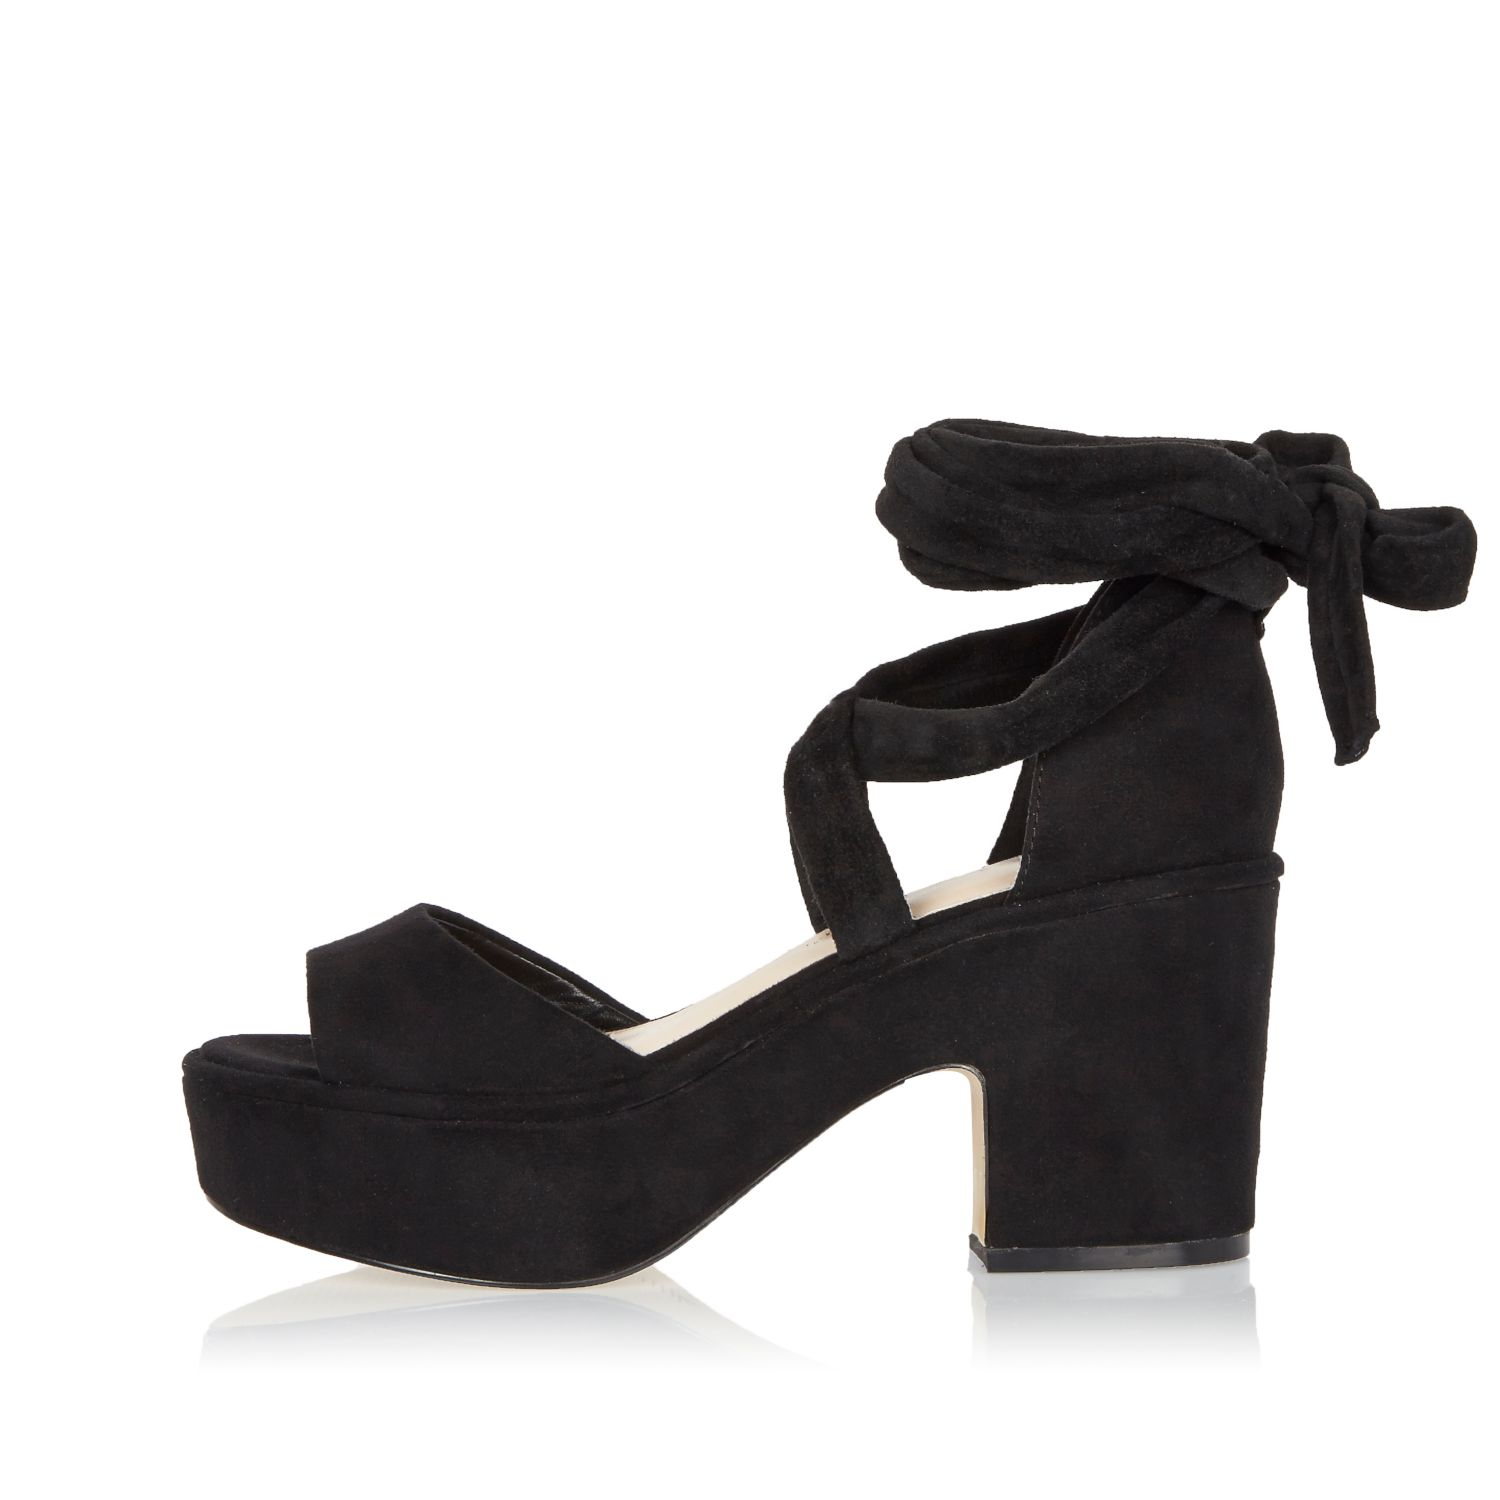 955459ec503 River Island Black Soft Tie-up Platform Block Heels in Black - Lyst